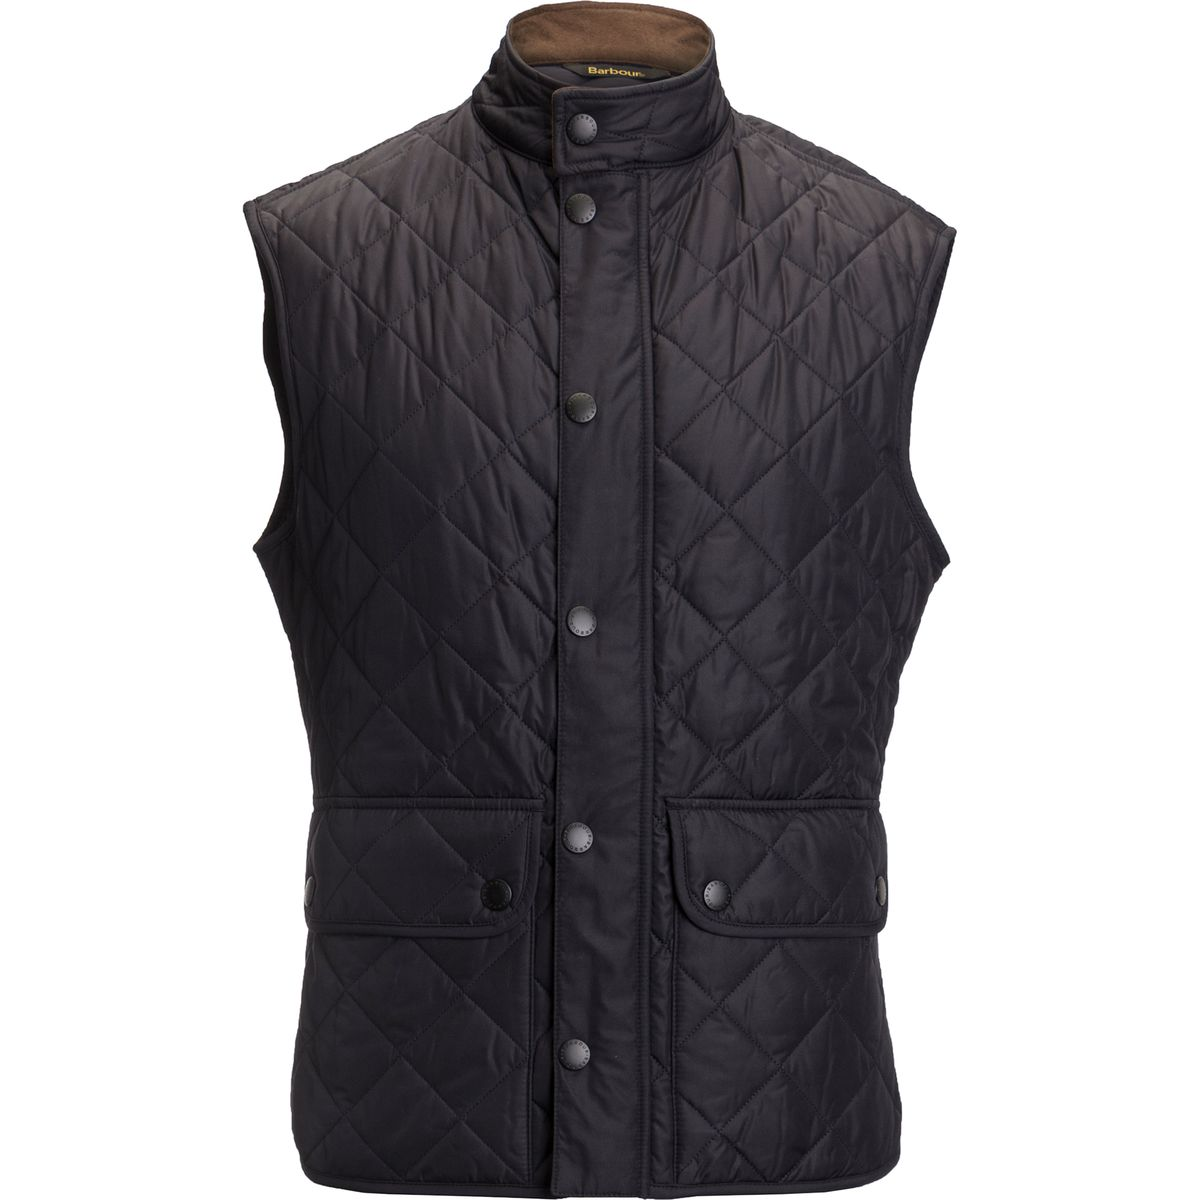 Barbour Lowerdale Quilted Vest Navy The Lucky Knot Men S